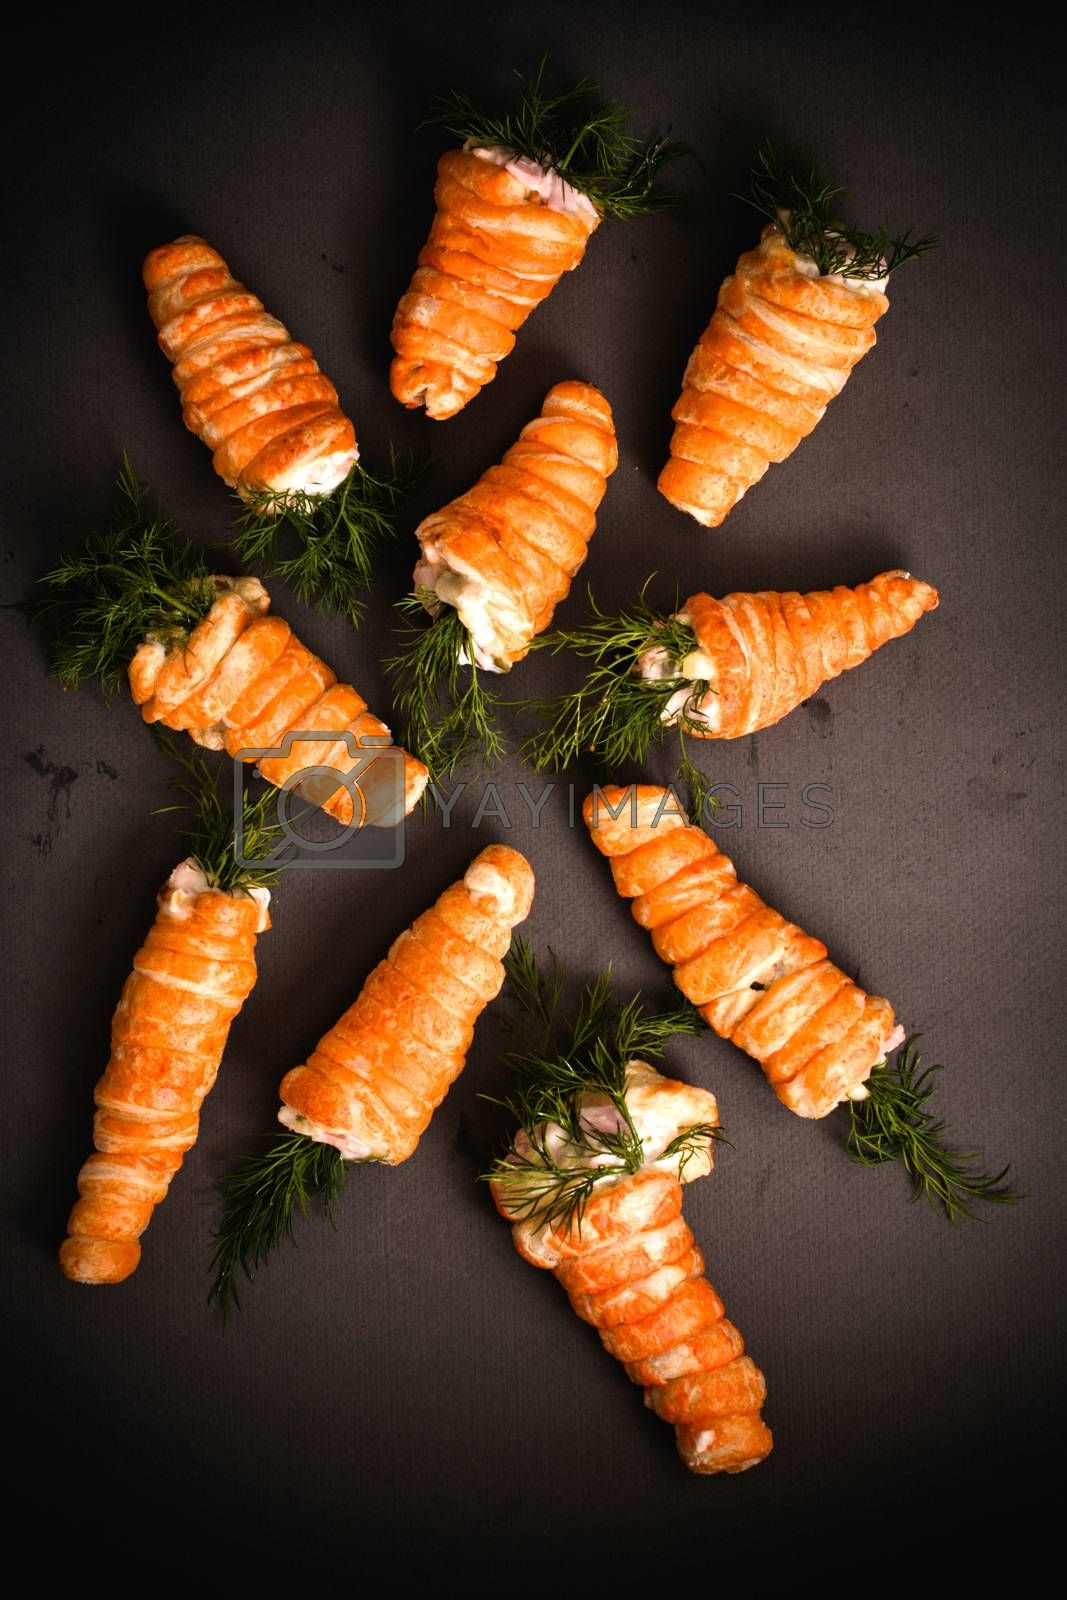 Easter carrots pastry stuffed with salad